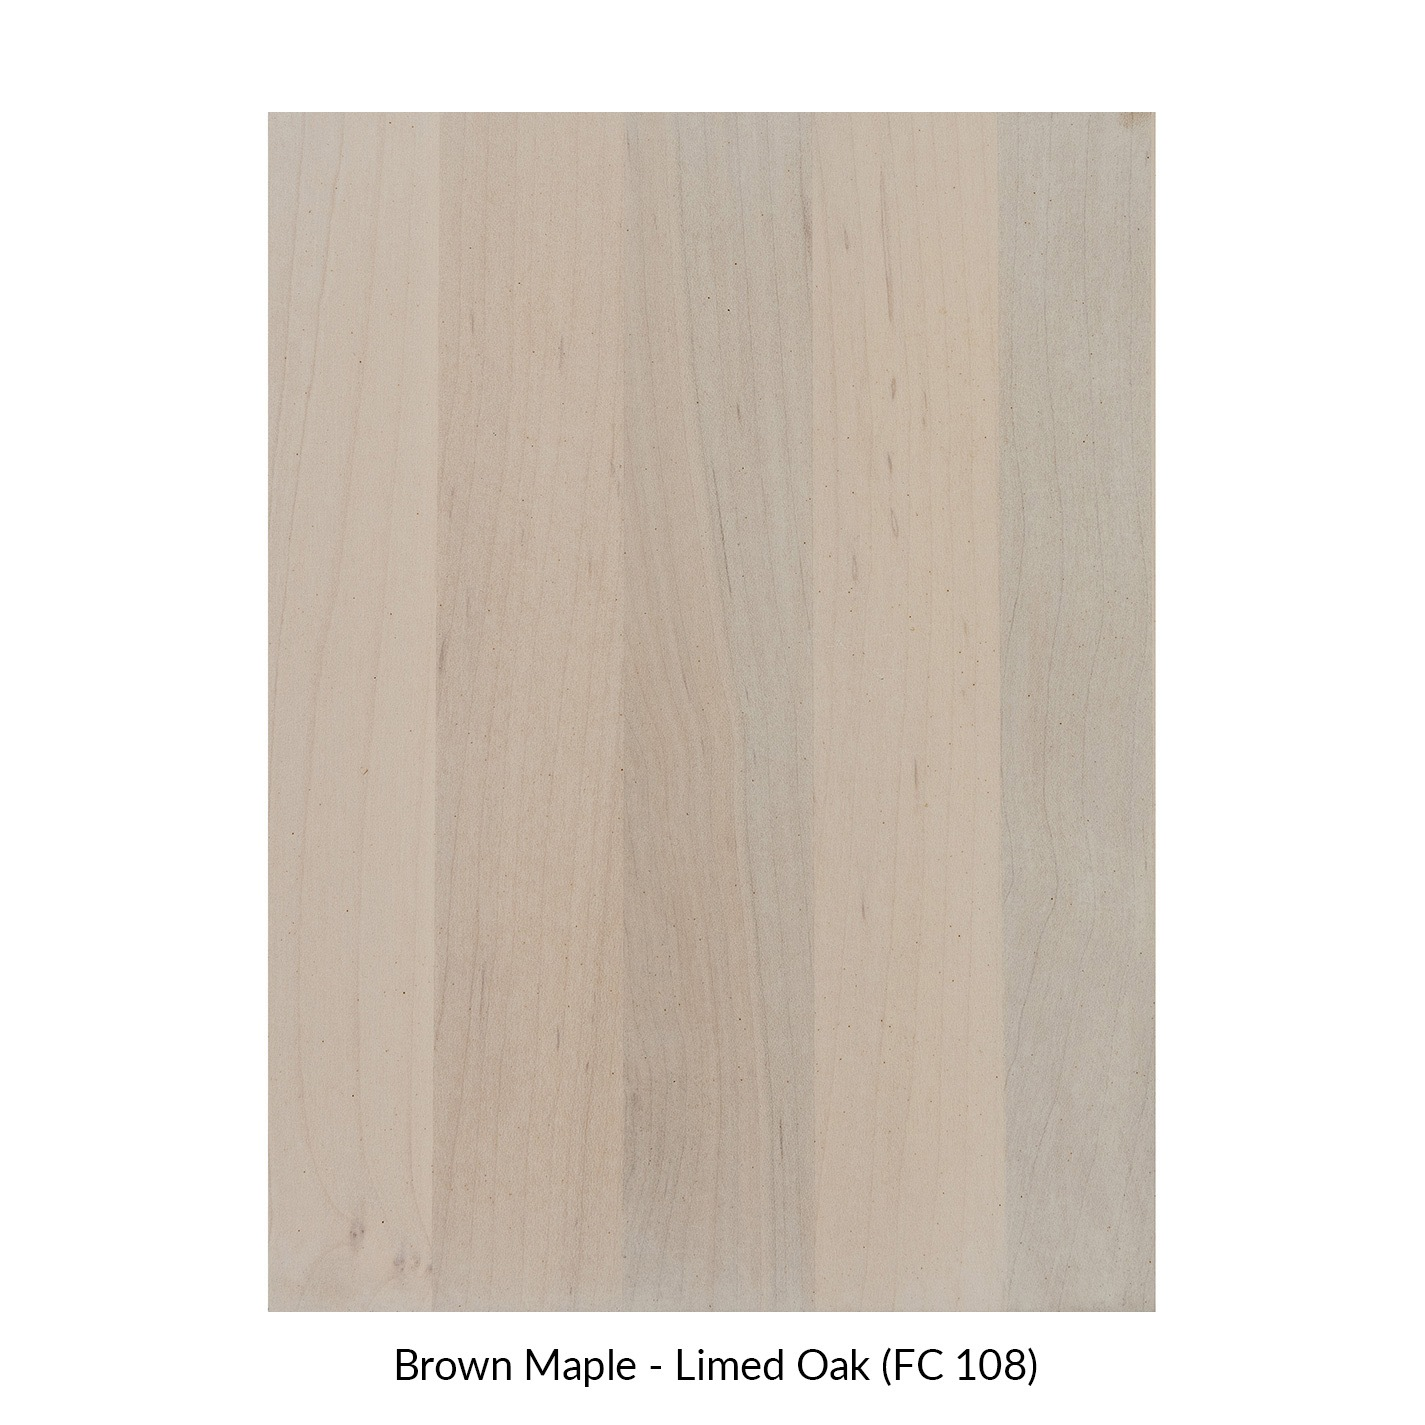 spectrum-brown-maple-limed-oak-fc-108.jpg